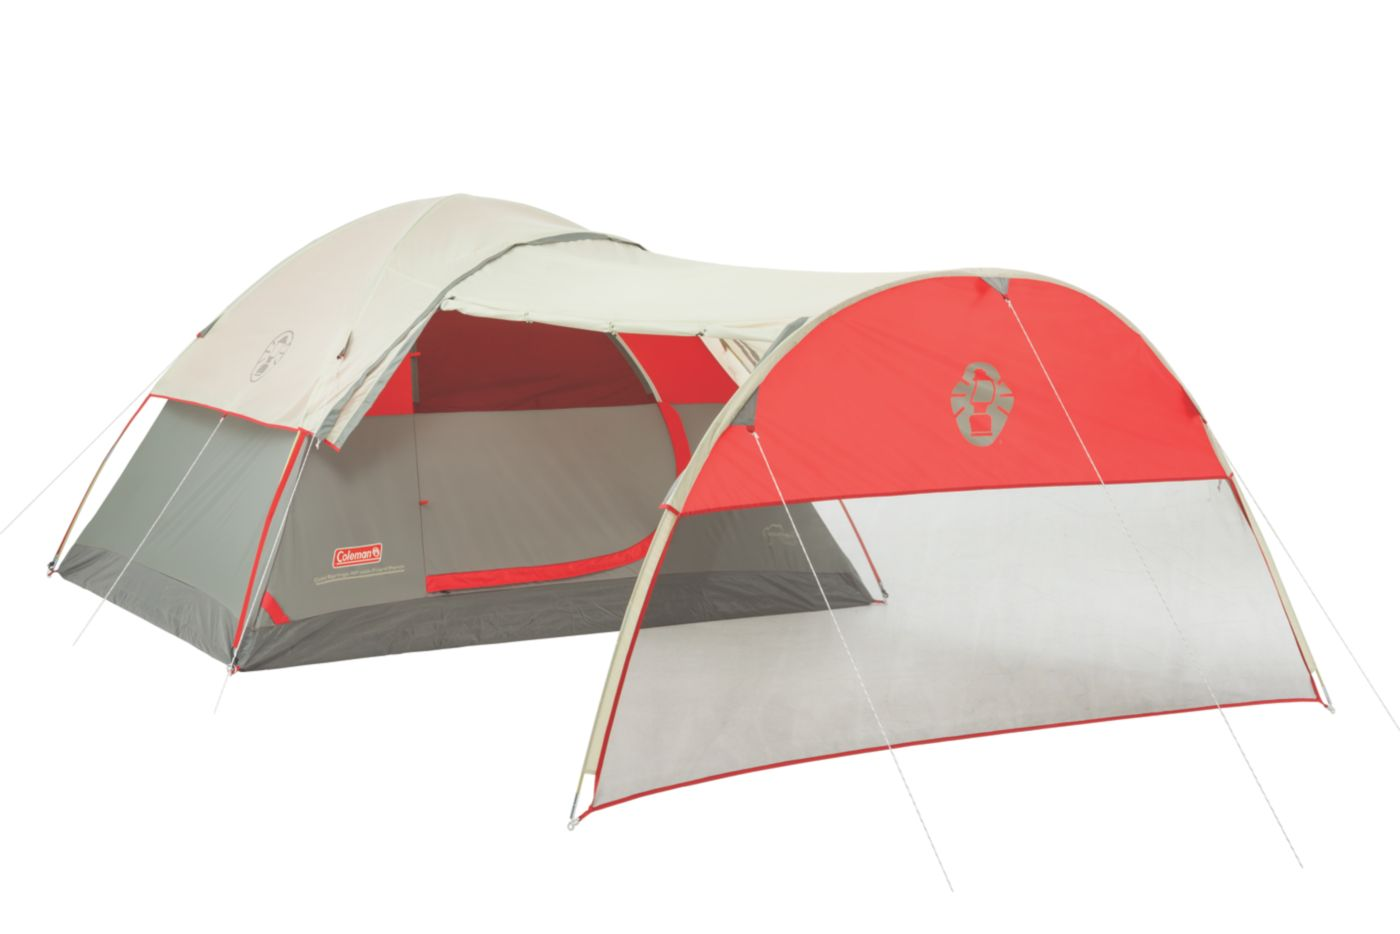 Cold Springs™ 4-Person Dome Tent with Porch  sc 1 st  Coleman & Cold Springs™ 4-Person Dome Tent with Porch - USA